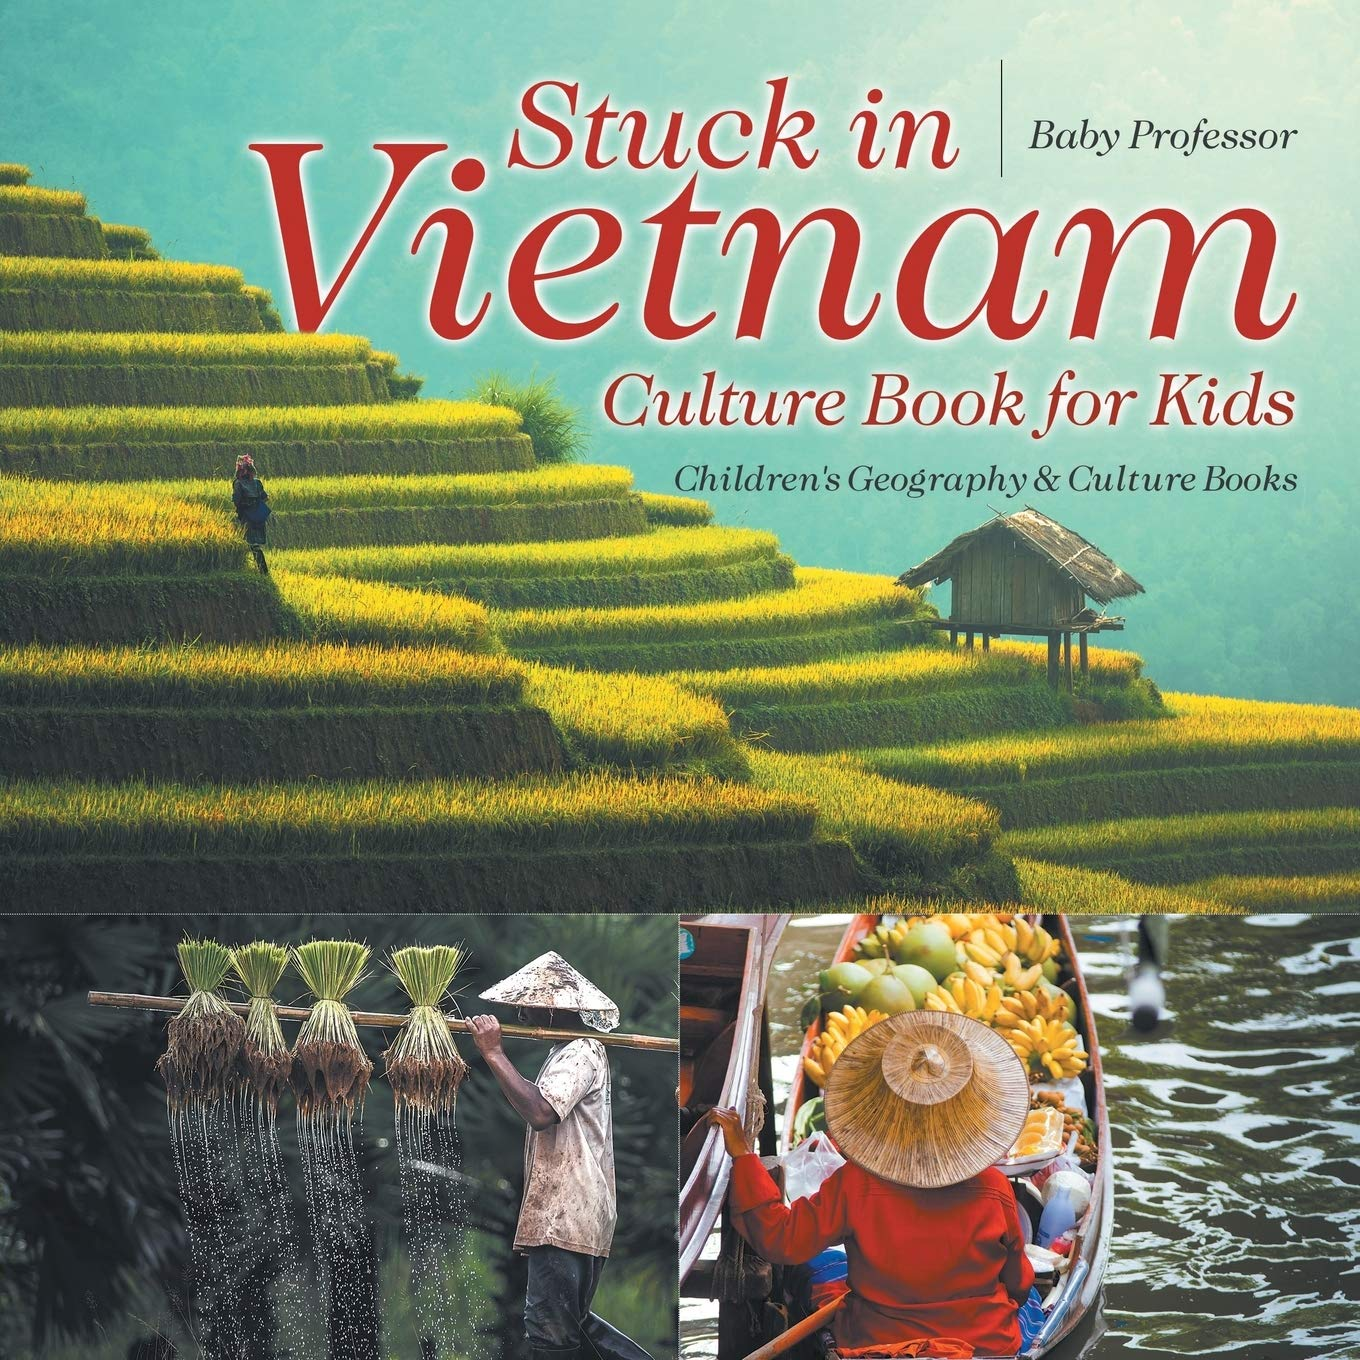 Stuck In Vietnam Culture Book For Kids Children S Geography Culture Books Professor Baby 9781541910997 Amazon Com Books